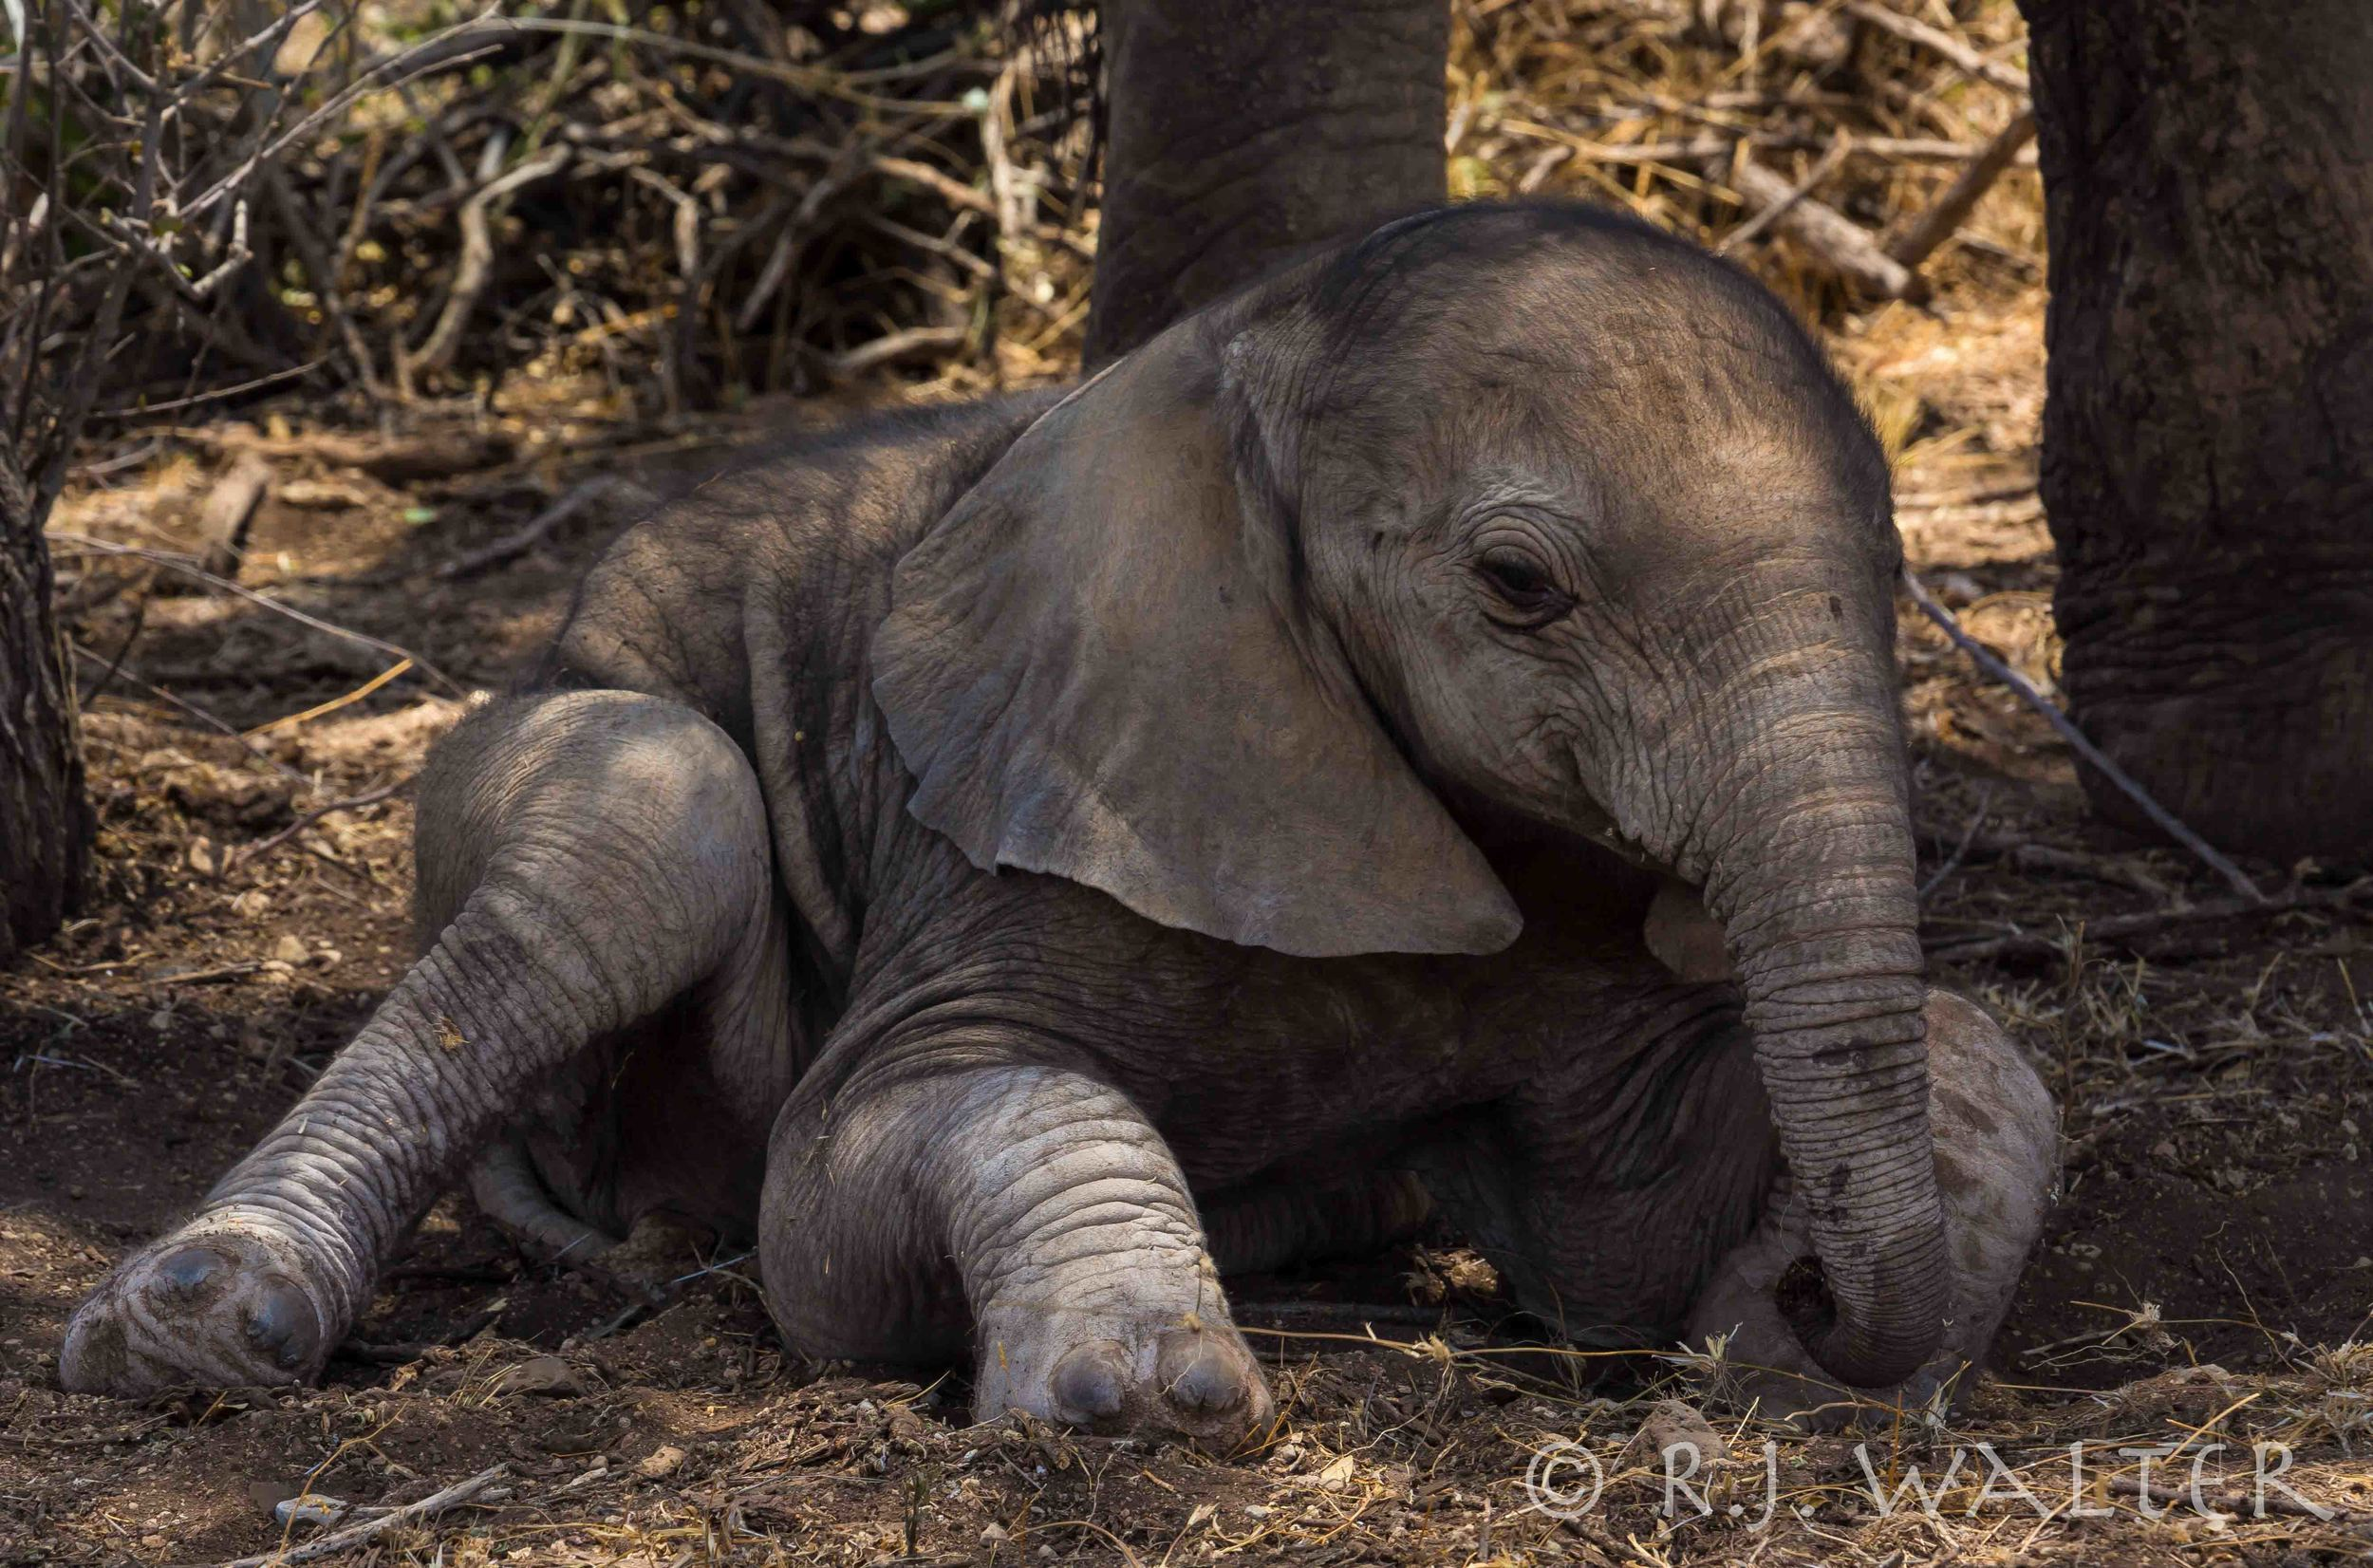 RJWalter_Save The Elephants_Samburu, Kenya_March 2015-2503.jpg